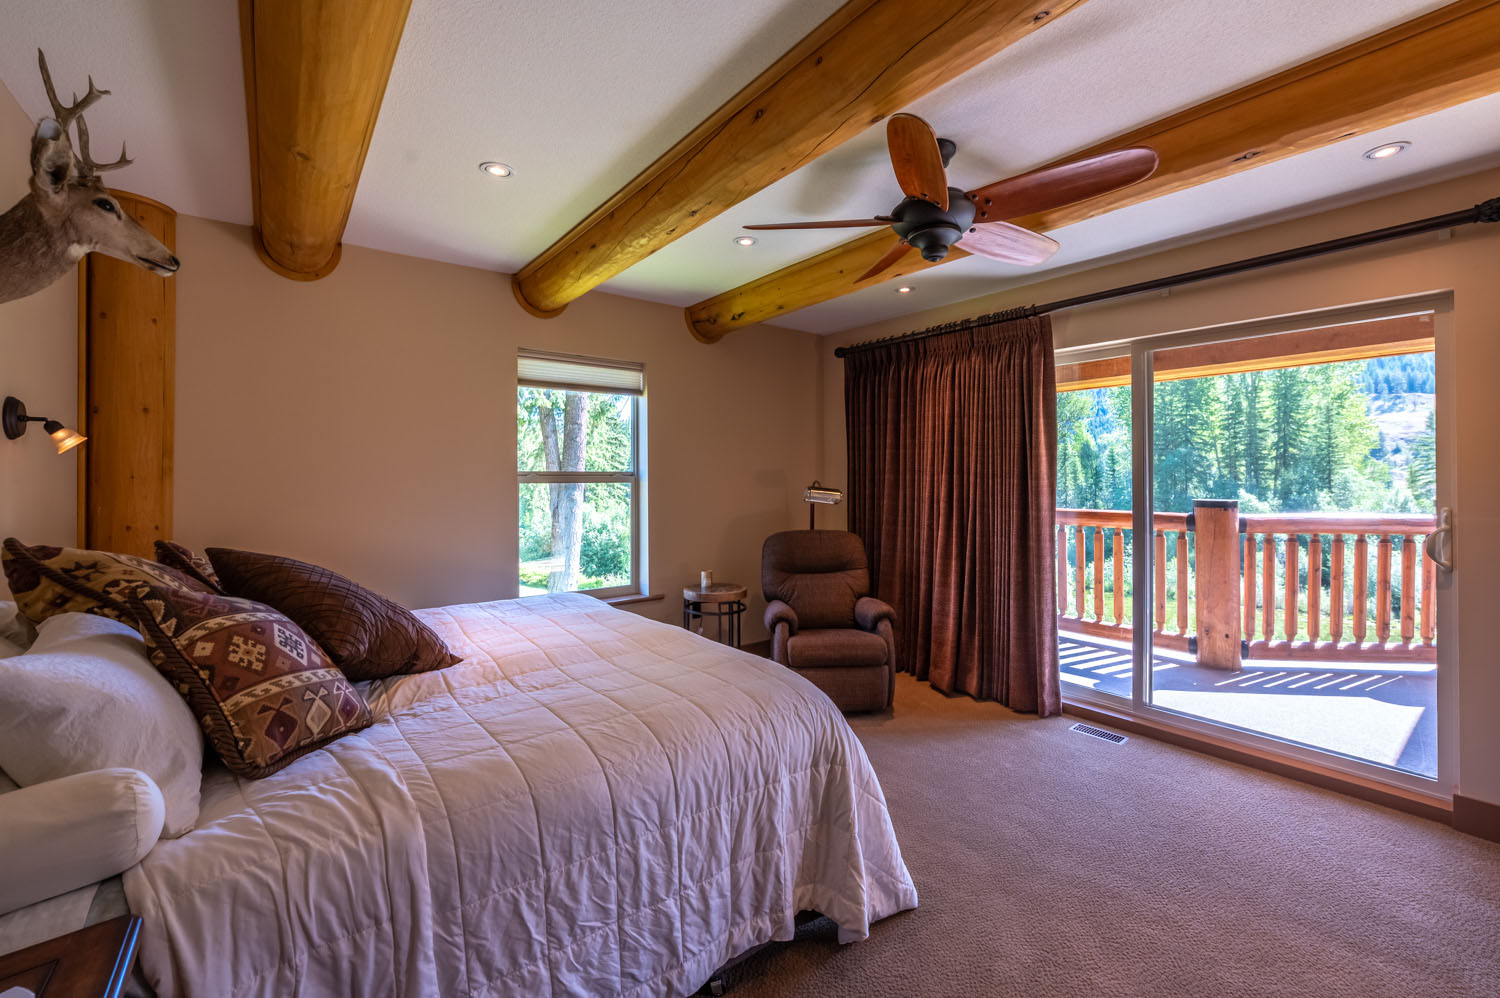 Willow springs ranch 33